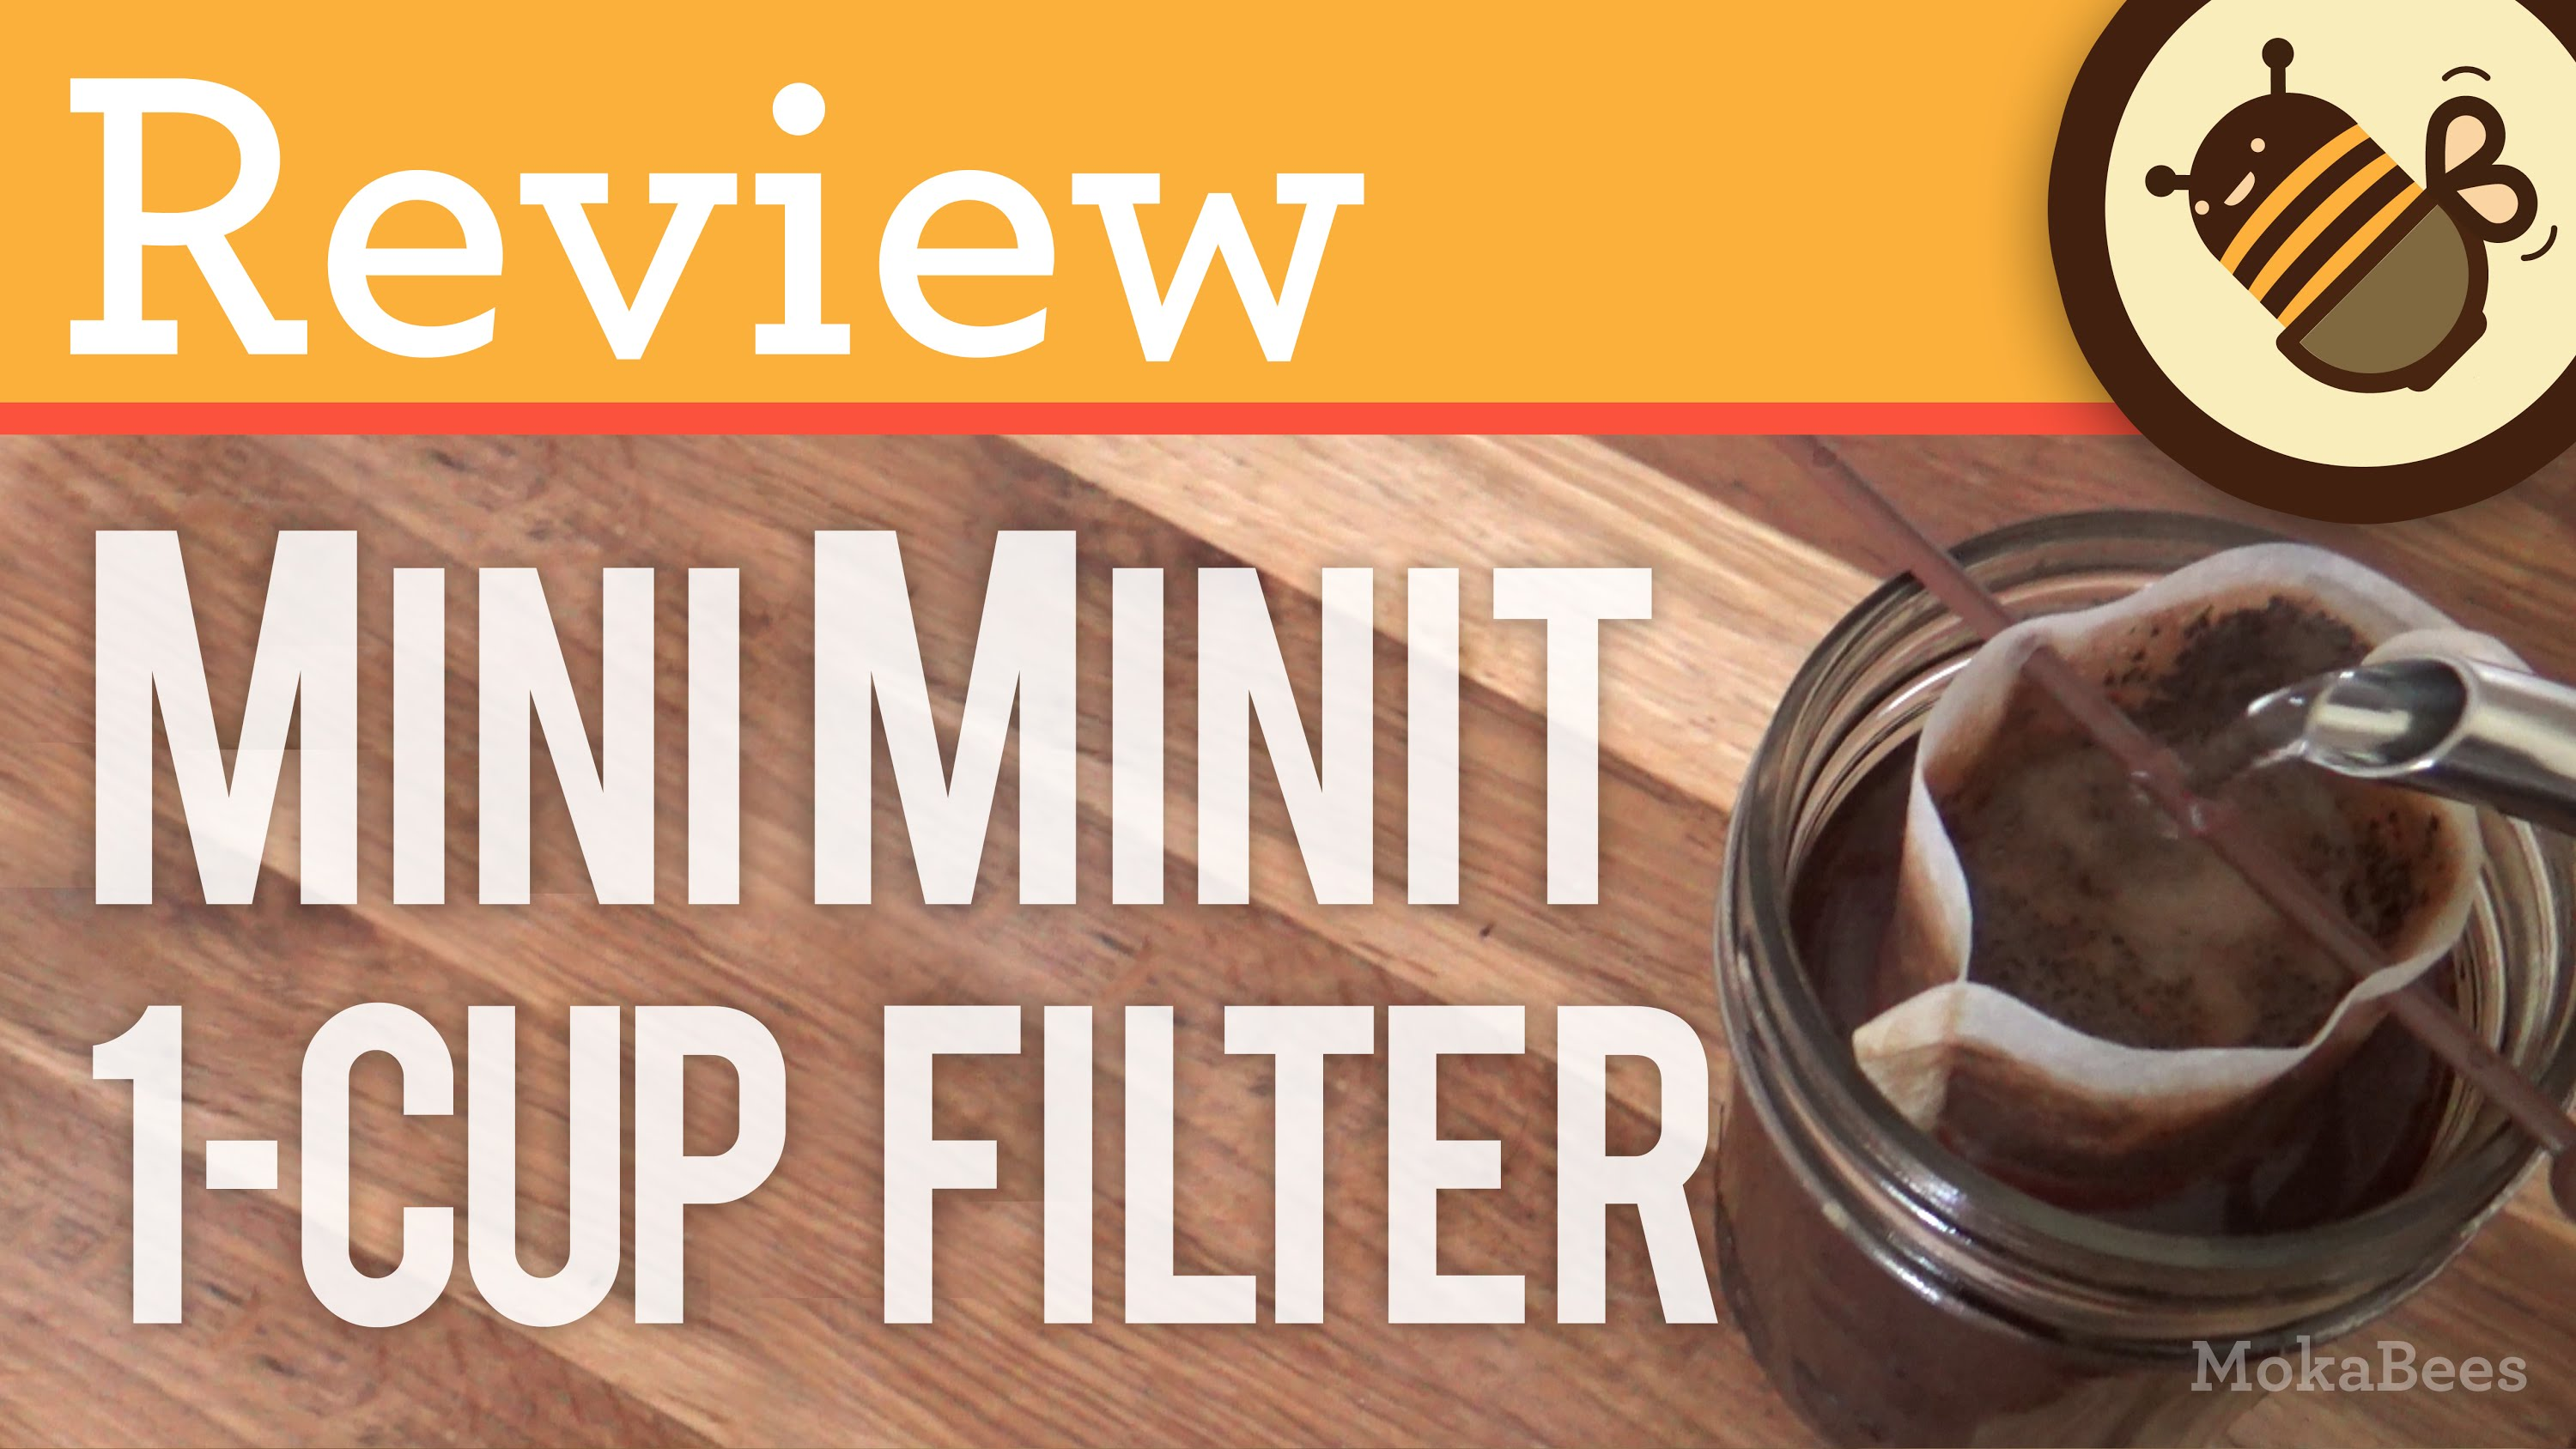 Review Miniminit One Cup Coffee Tea Filters Mini Minute Single Cup